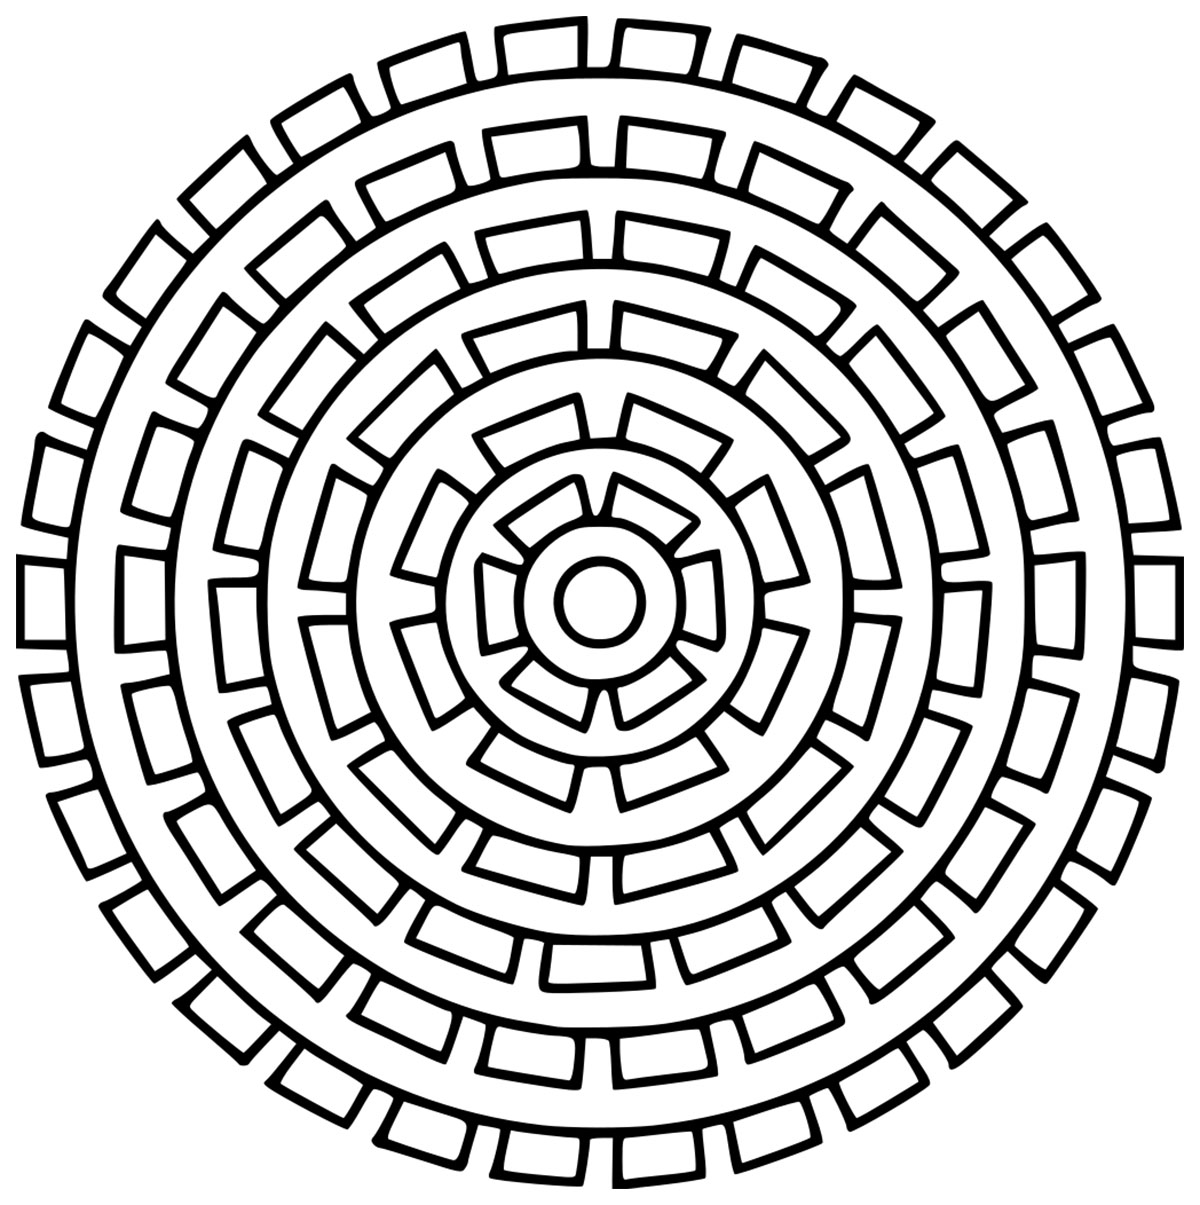 A Mandala coloring page with only one pattern, repeated in each levels. You can use as colors as you want, or just one.